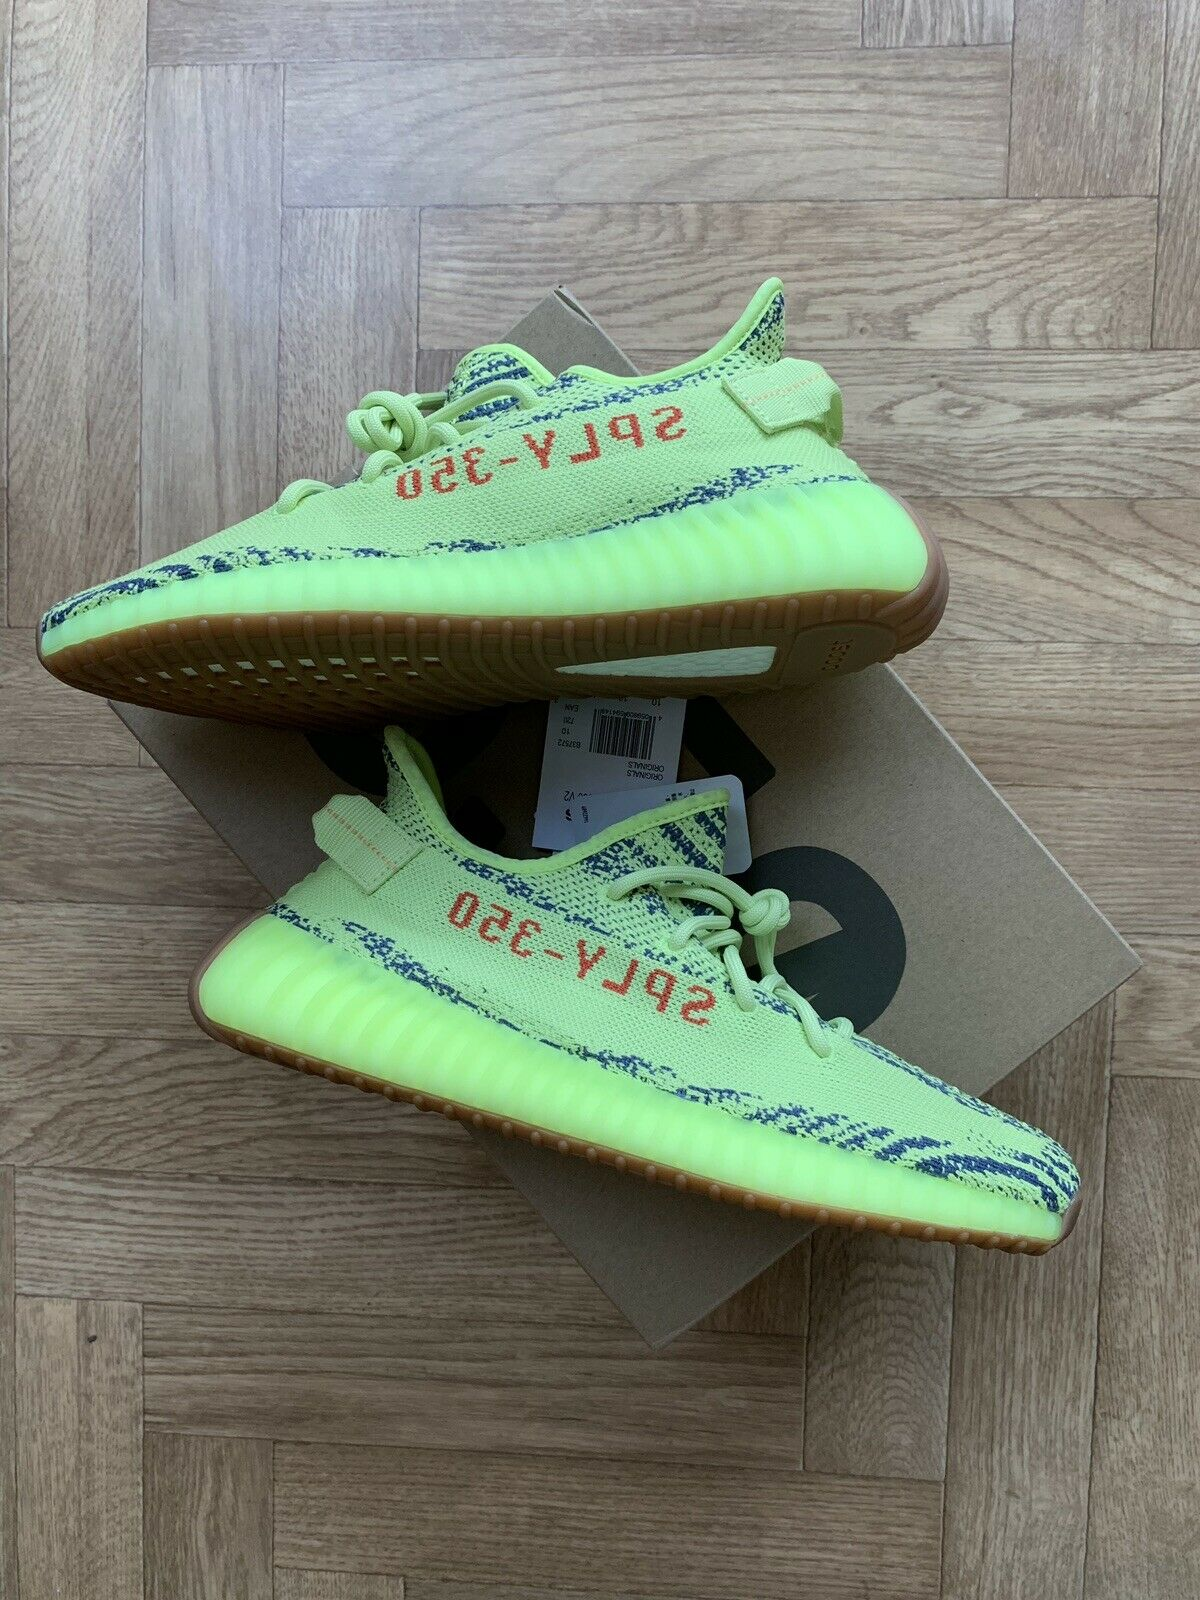 Adidas Zeezy 350 Boost V2 Frozen Yellow Size 10 Brand New (with Receipt)